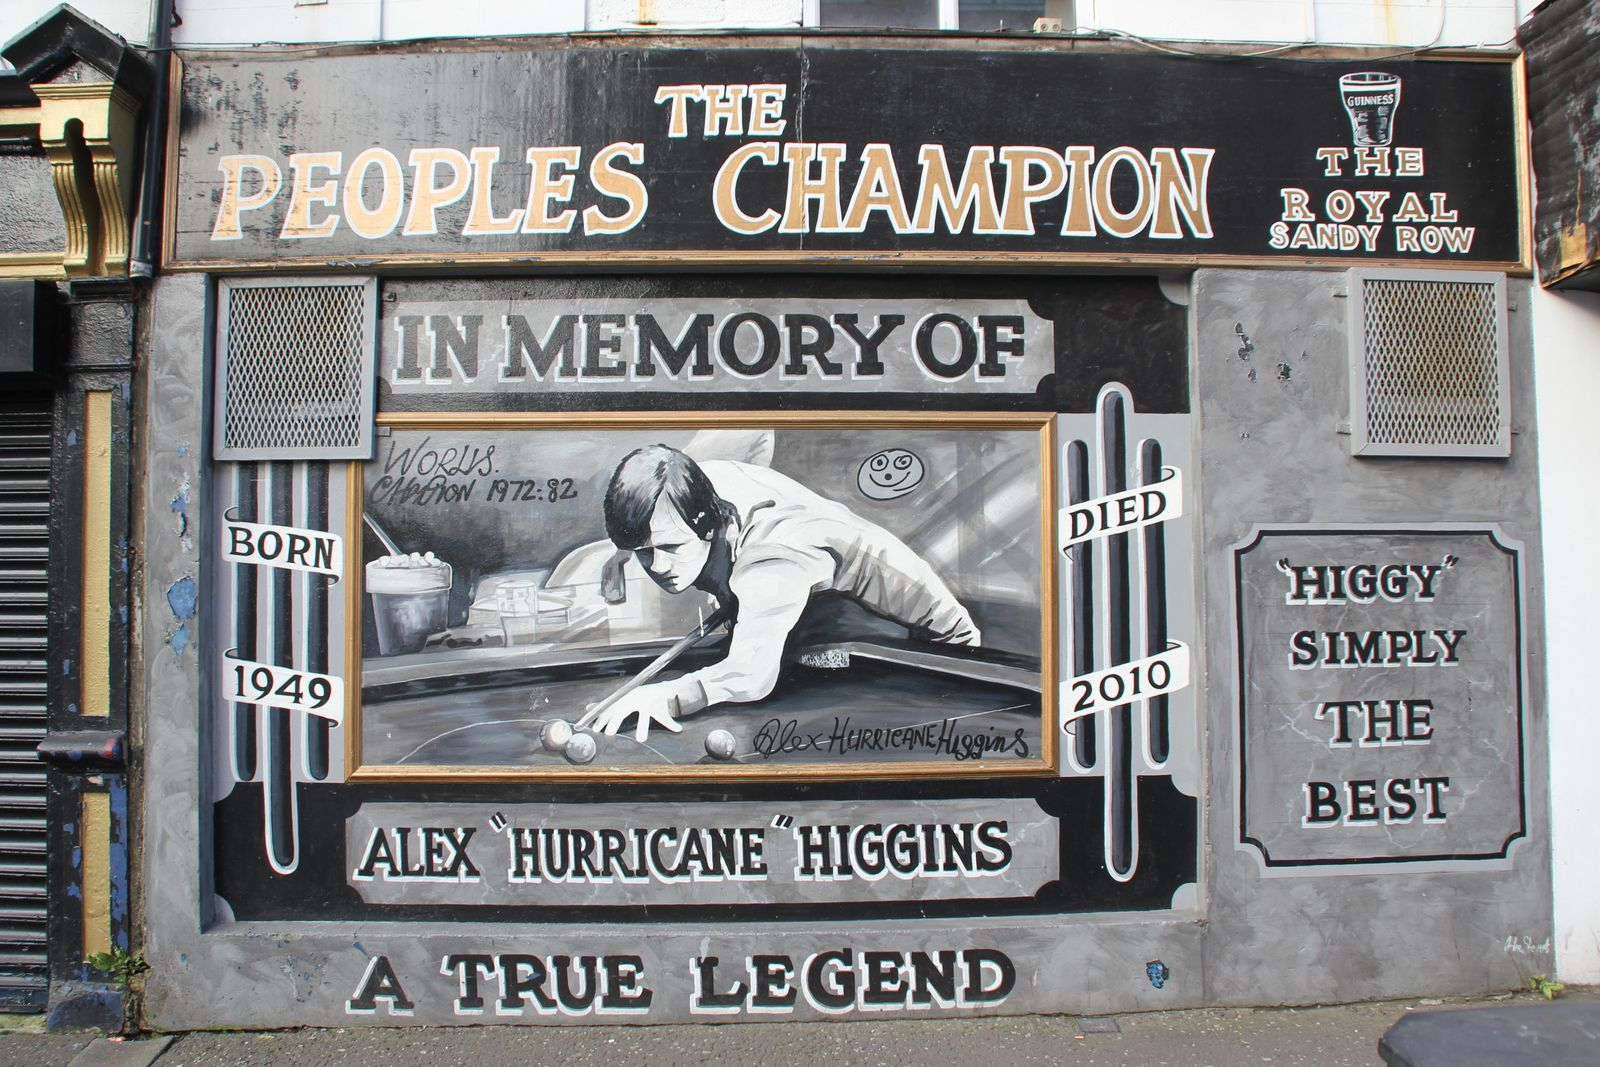 454) Donegal Road, South Belfast